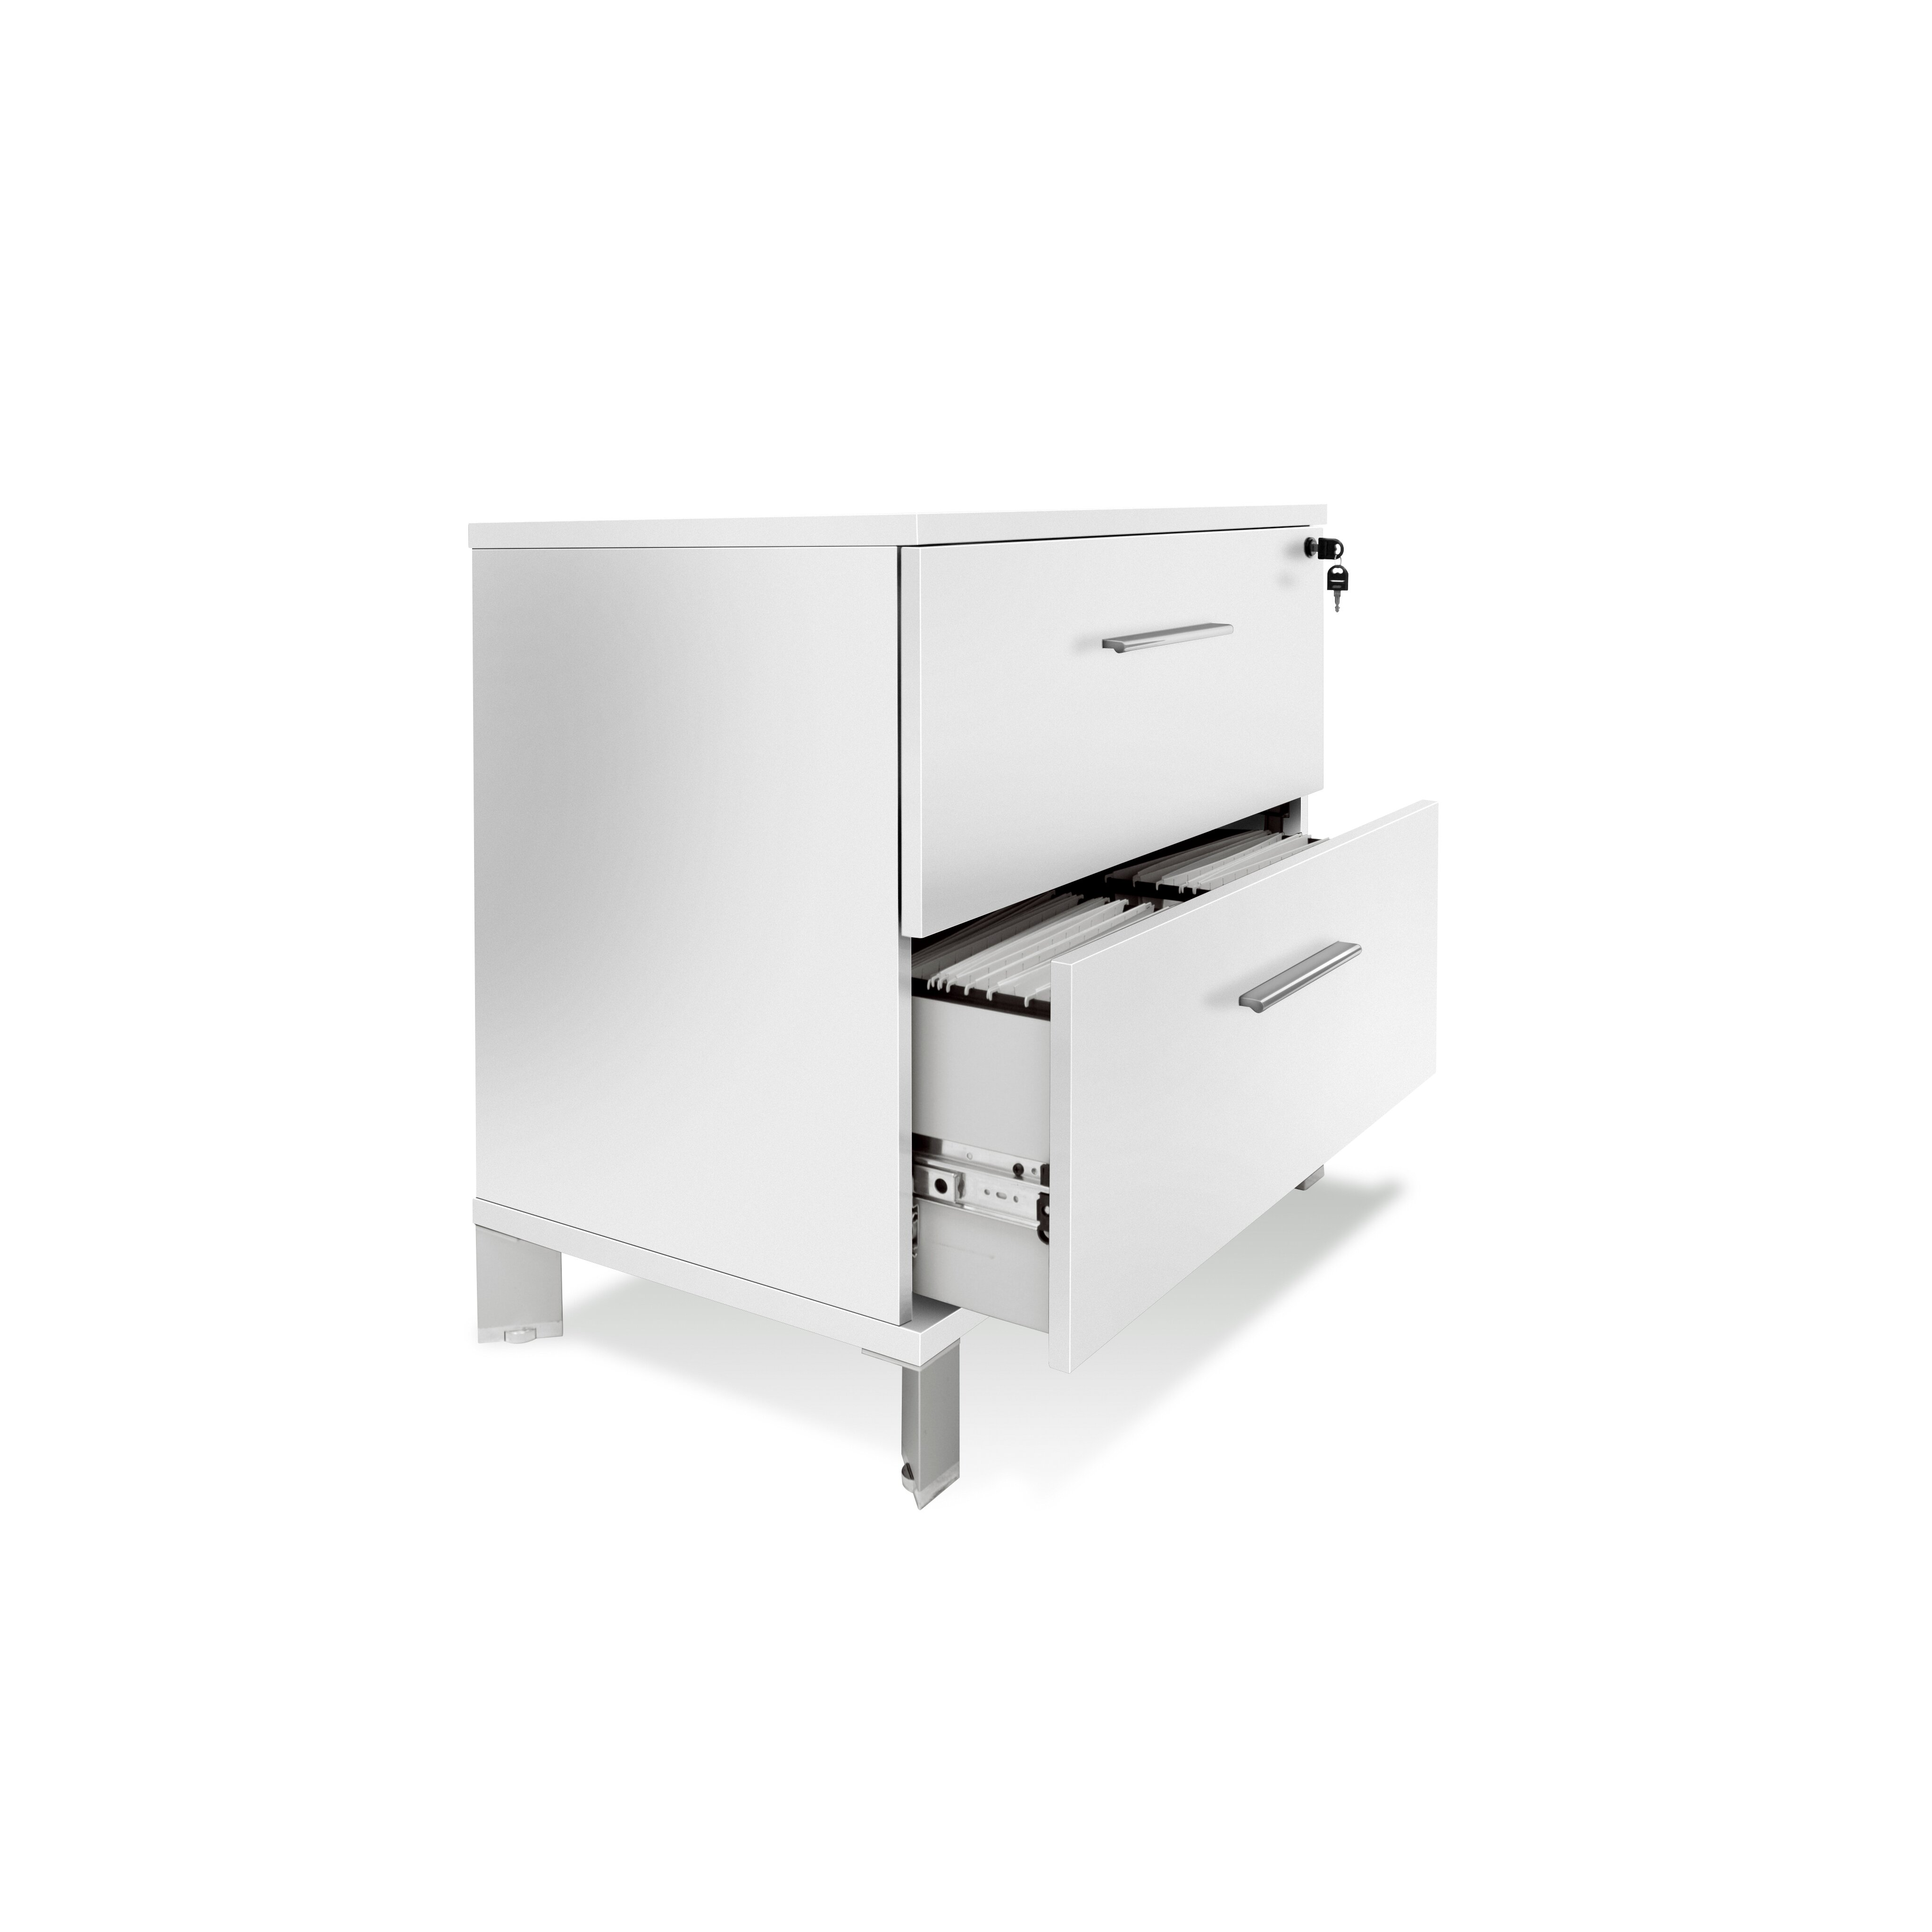 Lorell Lateral File Cabinet Haaken Furniture Pure Office 2 Drawer Lateral File Reviews Wayfair